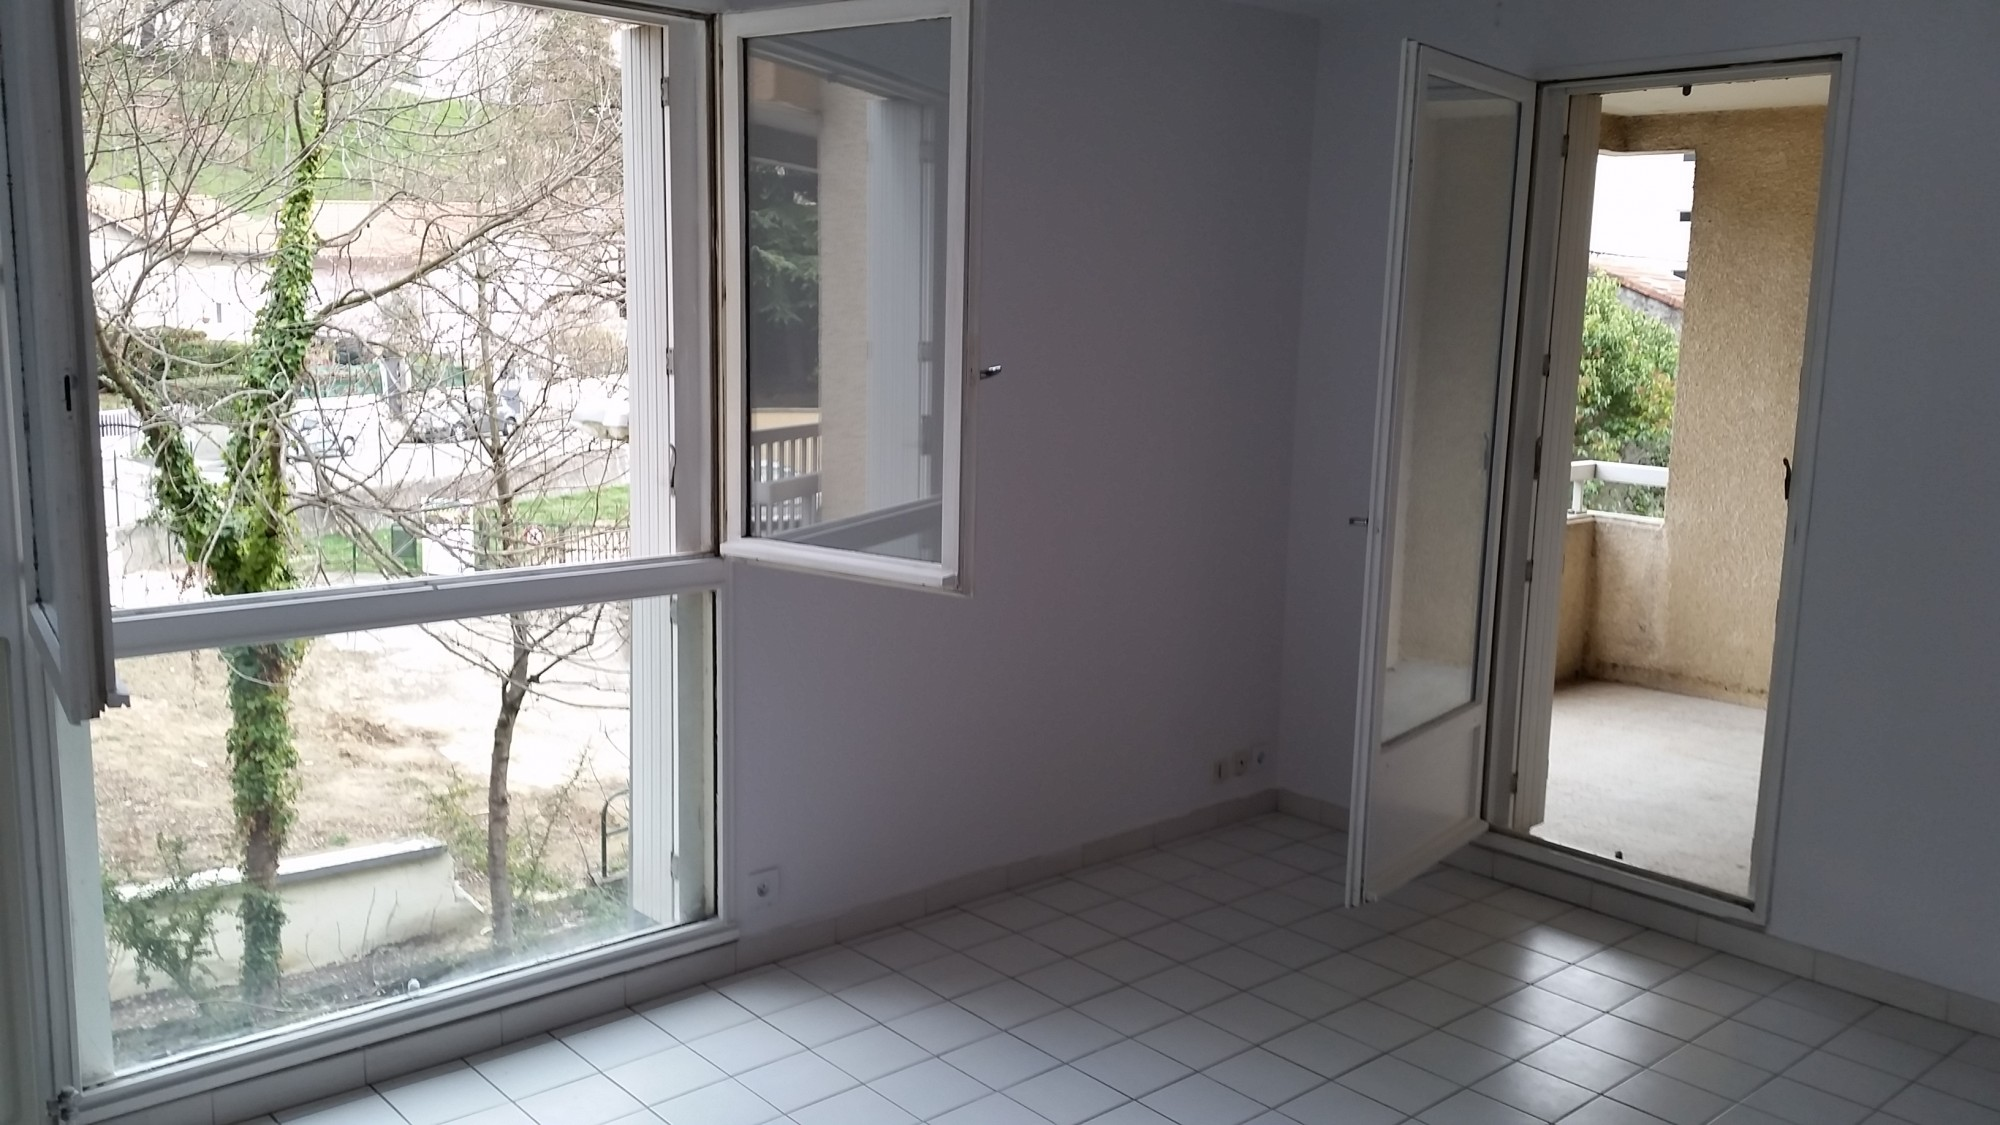 Valence location appartement grand charran avec balcon et ascenseur location agence - Location appartement meuble valence ...